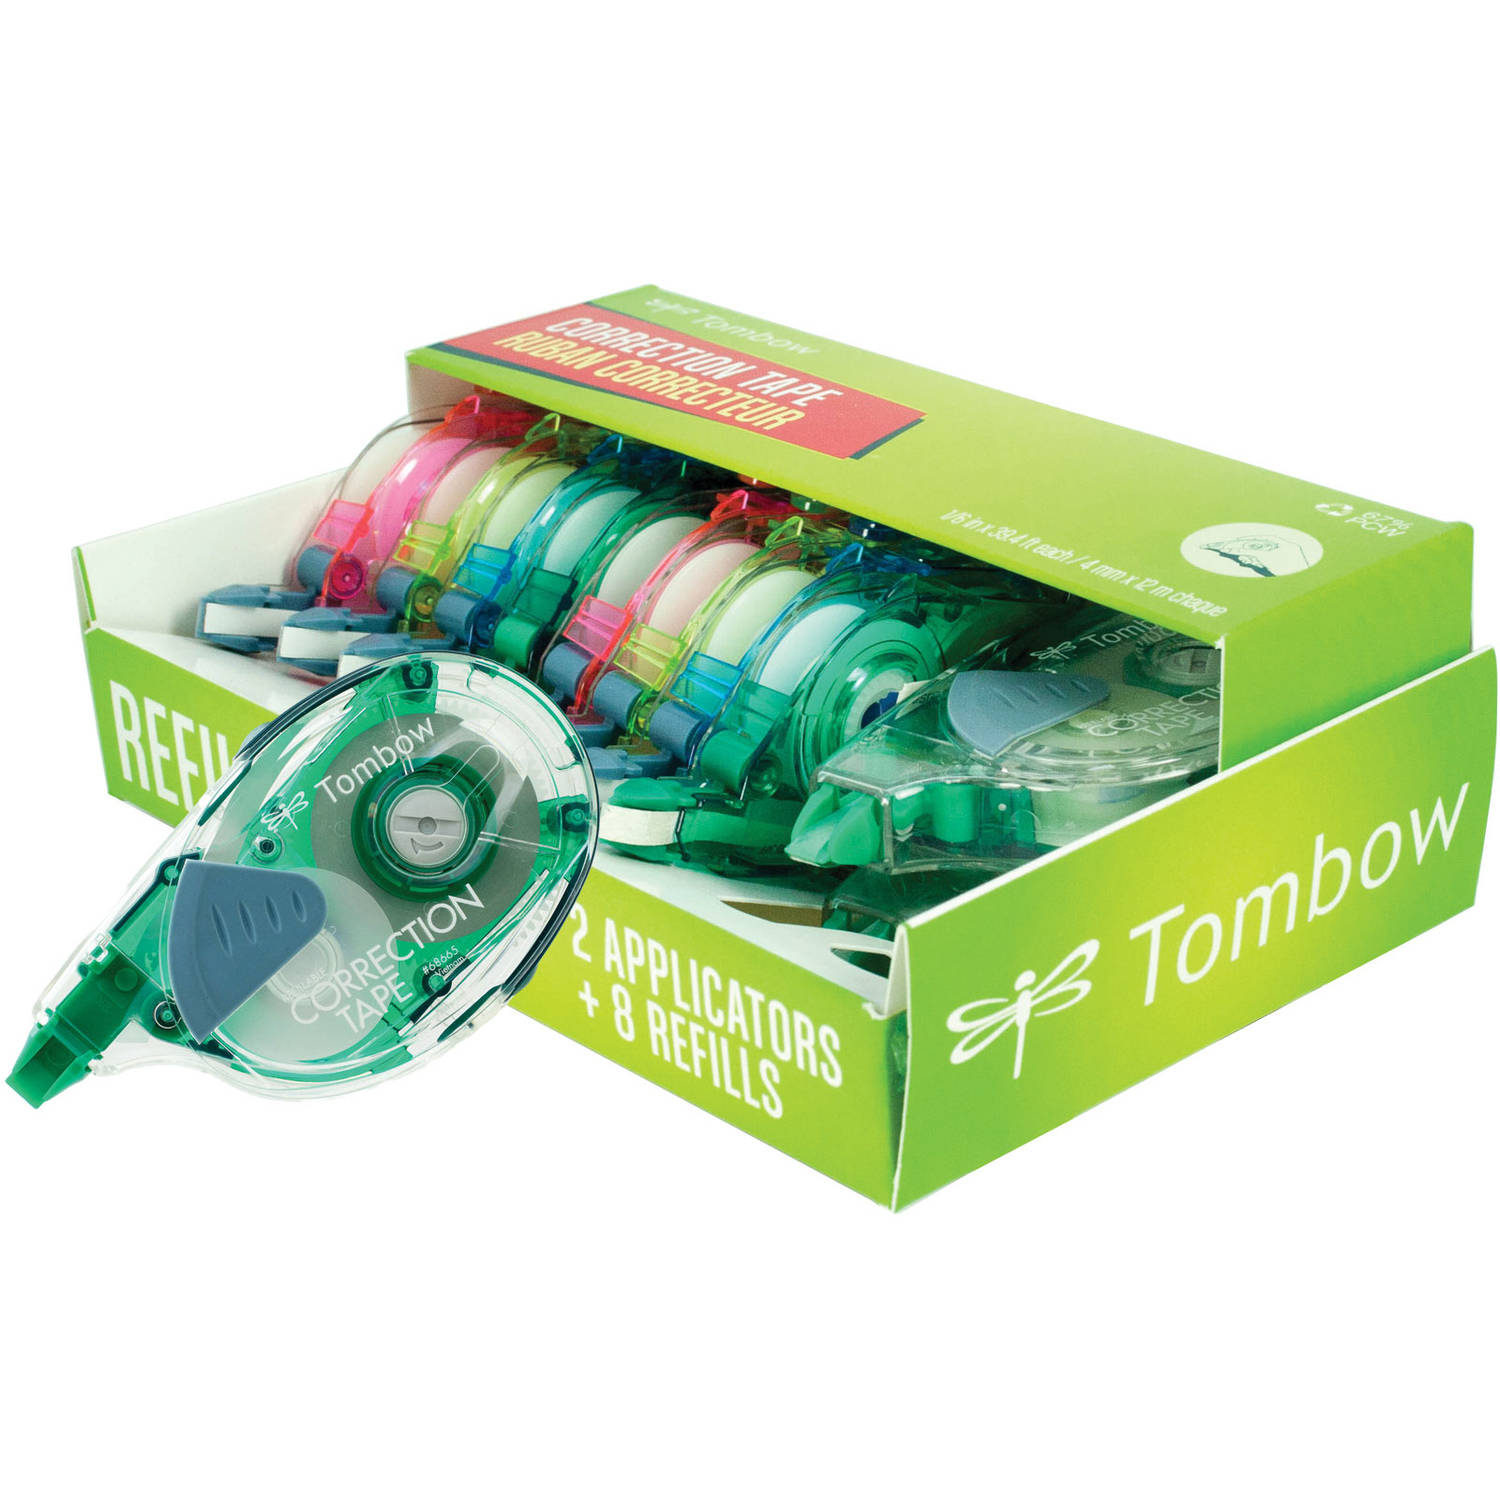 Tombow Mono Refillable Correction Tape Applicators + Refills, Assorted Colors, 10pk